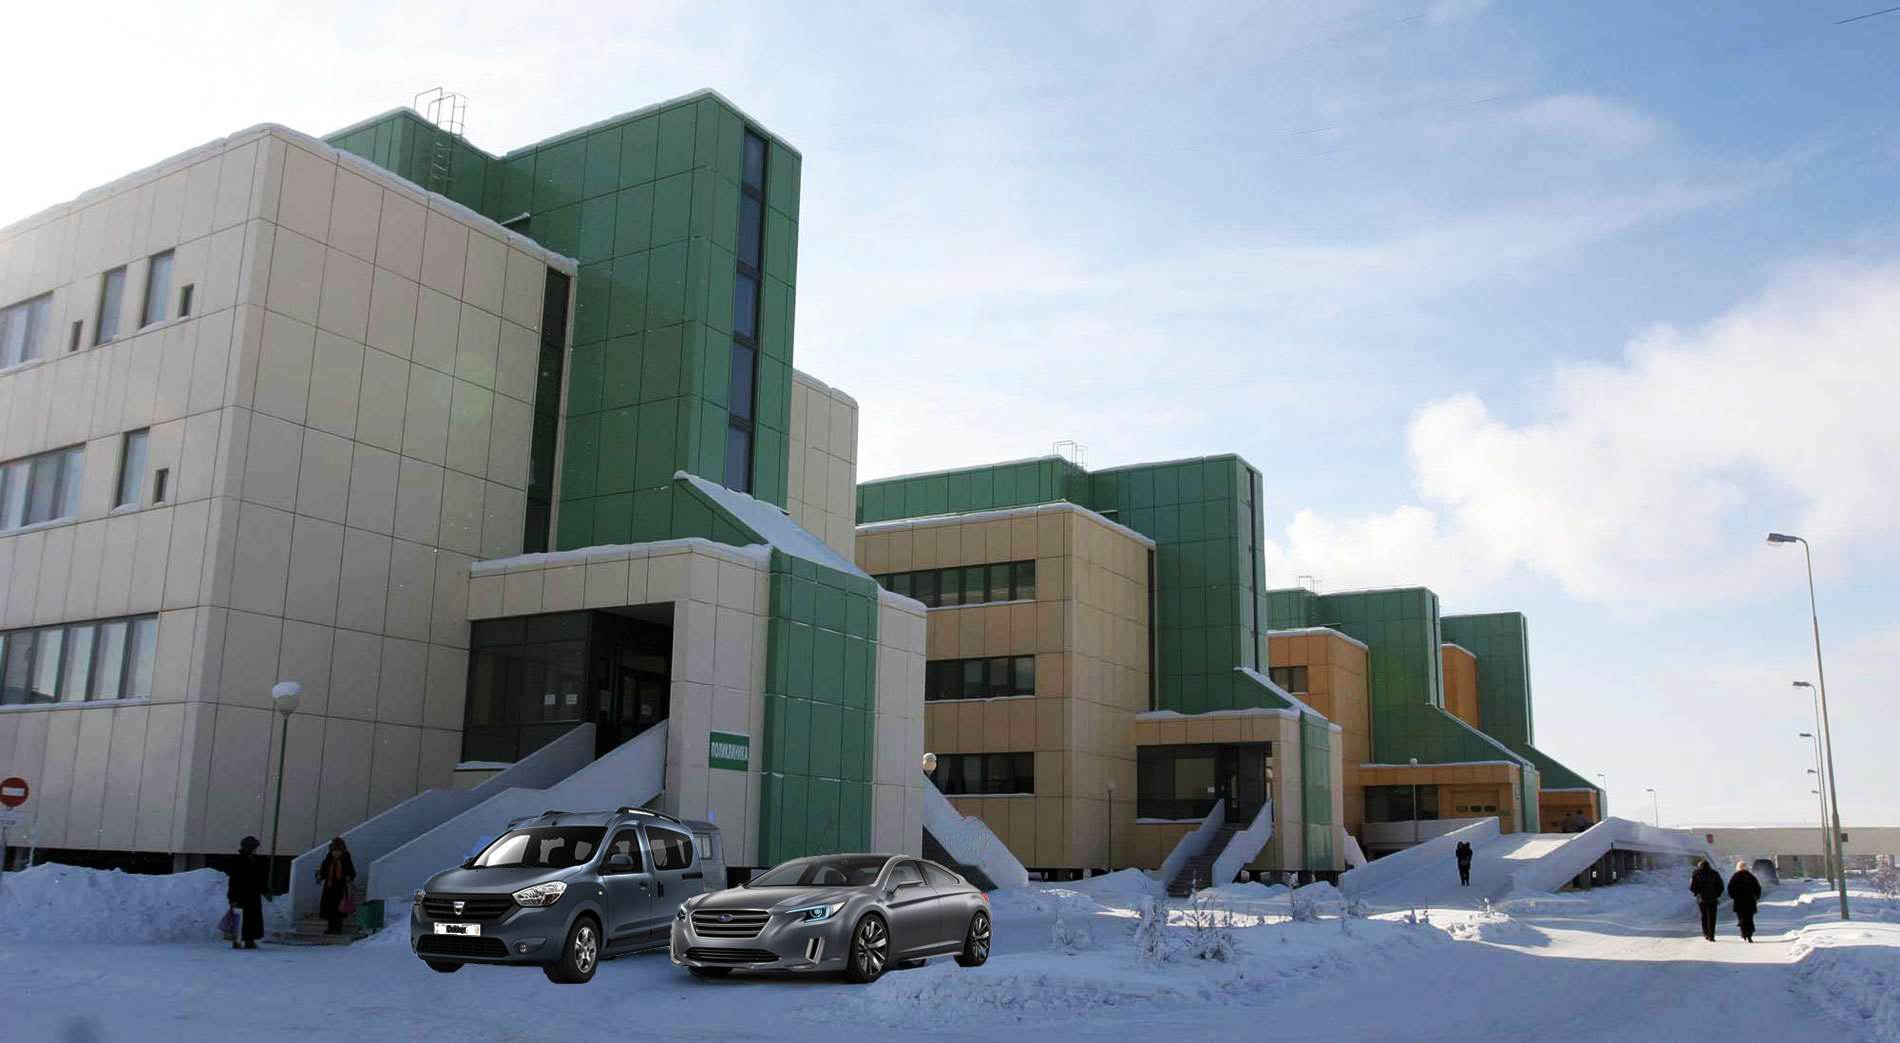 Mother and Child Care Hospital Yakutsk Republic of Sakha